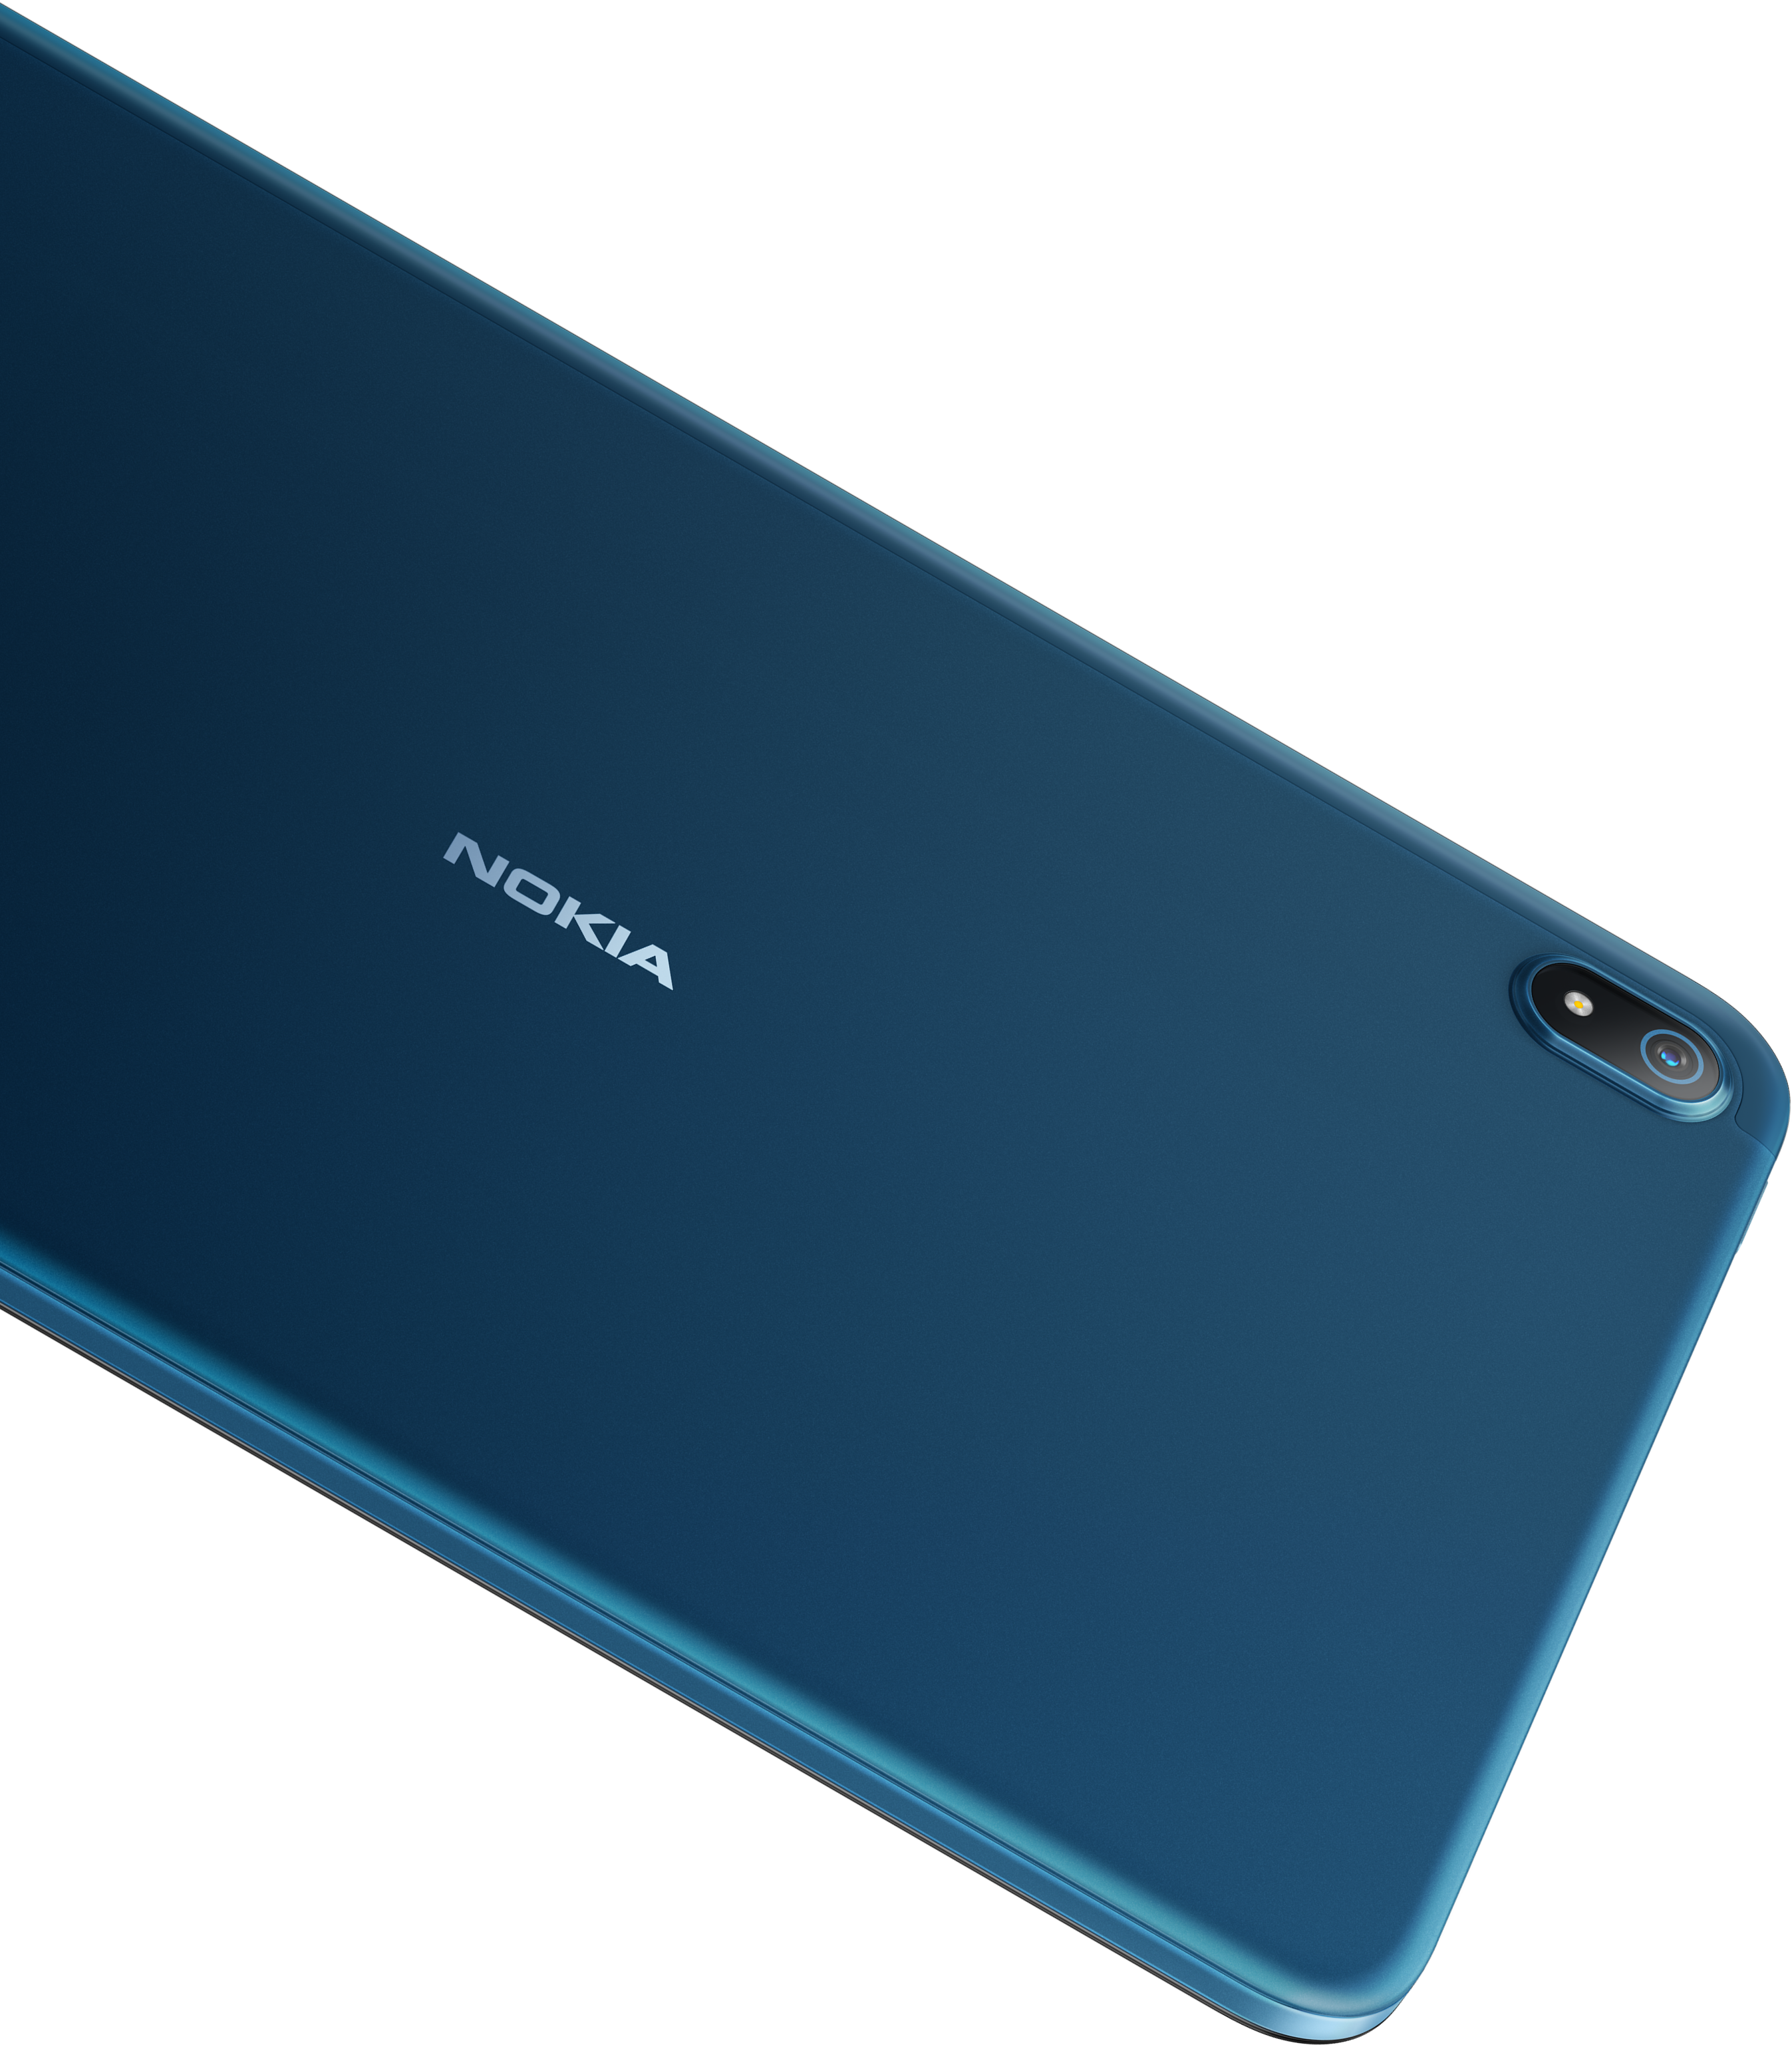 The back of the Nokia T20 tablet